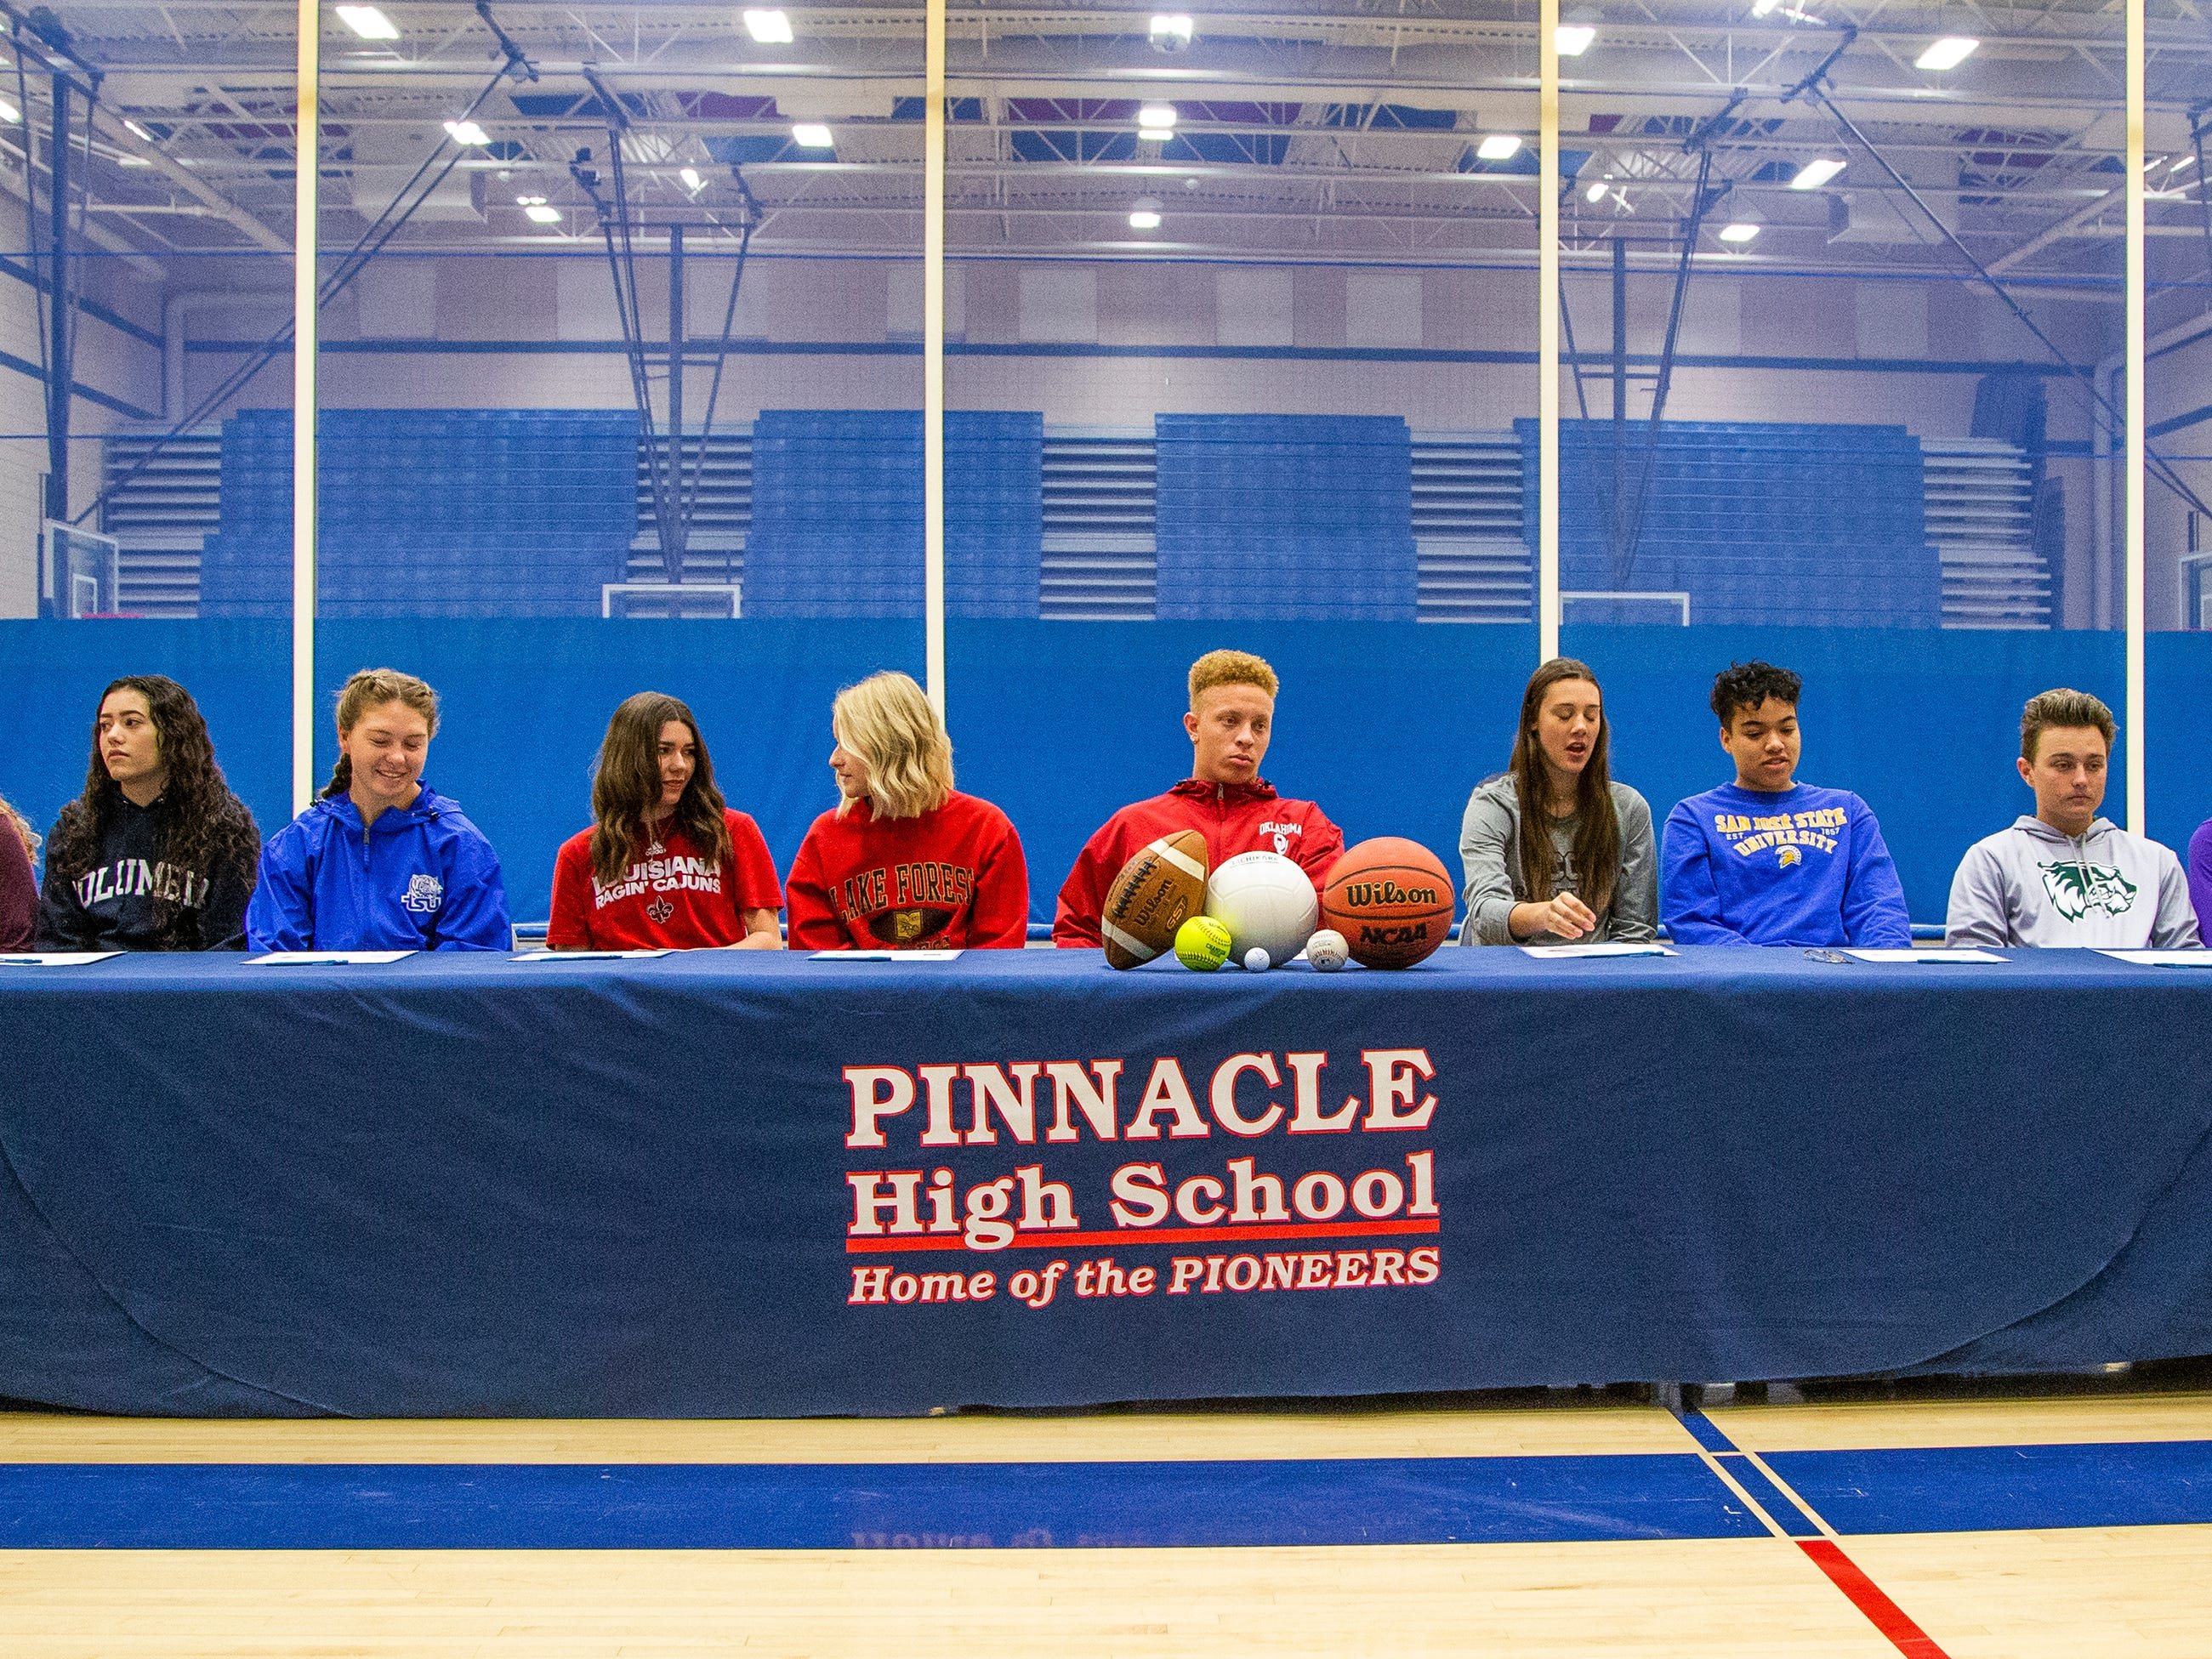 Pinnacle High School hosted a mock signing day event for 10 of its athletes on Tuesday, Dec. 18, 2018.